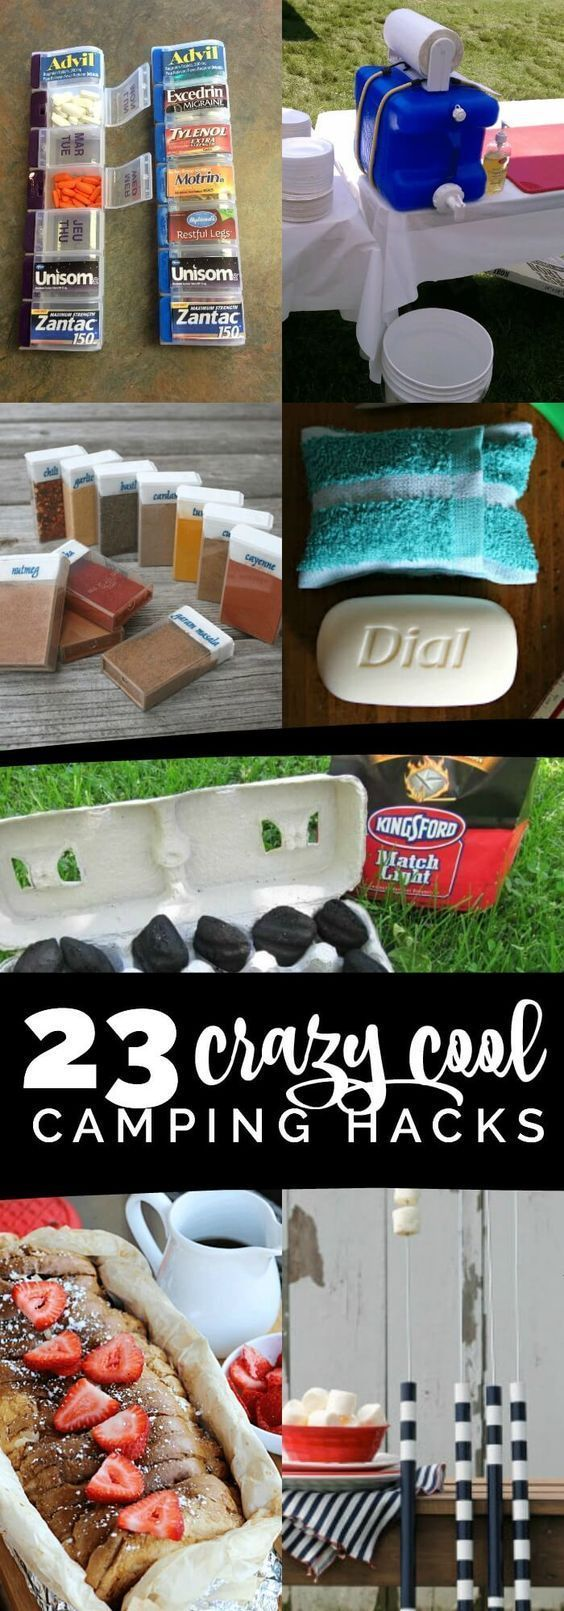 These crazy cool camping hacks, tips and tricks will save you time, money and frustration! Camping can be so much fun, but it can also be a lot of work. But with a little pre-planning -- and these camping hacks, tips, tricks and insider tips -- you can be a happy camper! From an emergency toilet, to a headlamp lantern hack, to storing medicine while camping to how to make campfire orange rolls, t... ** You can find more details by visiting the image link. #CampingTipsTricks